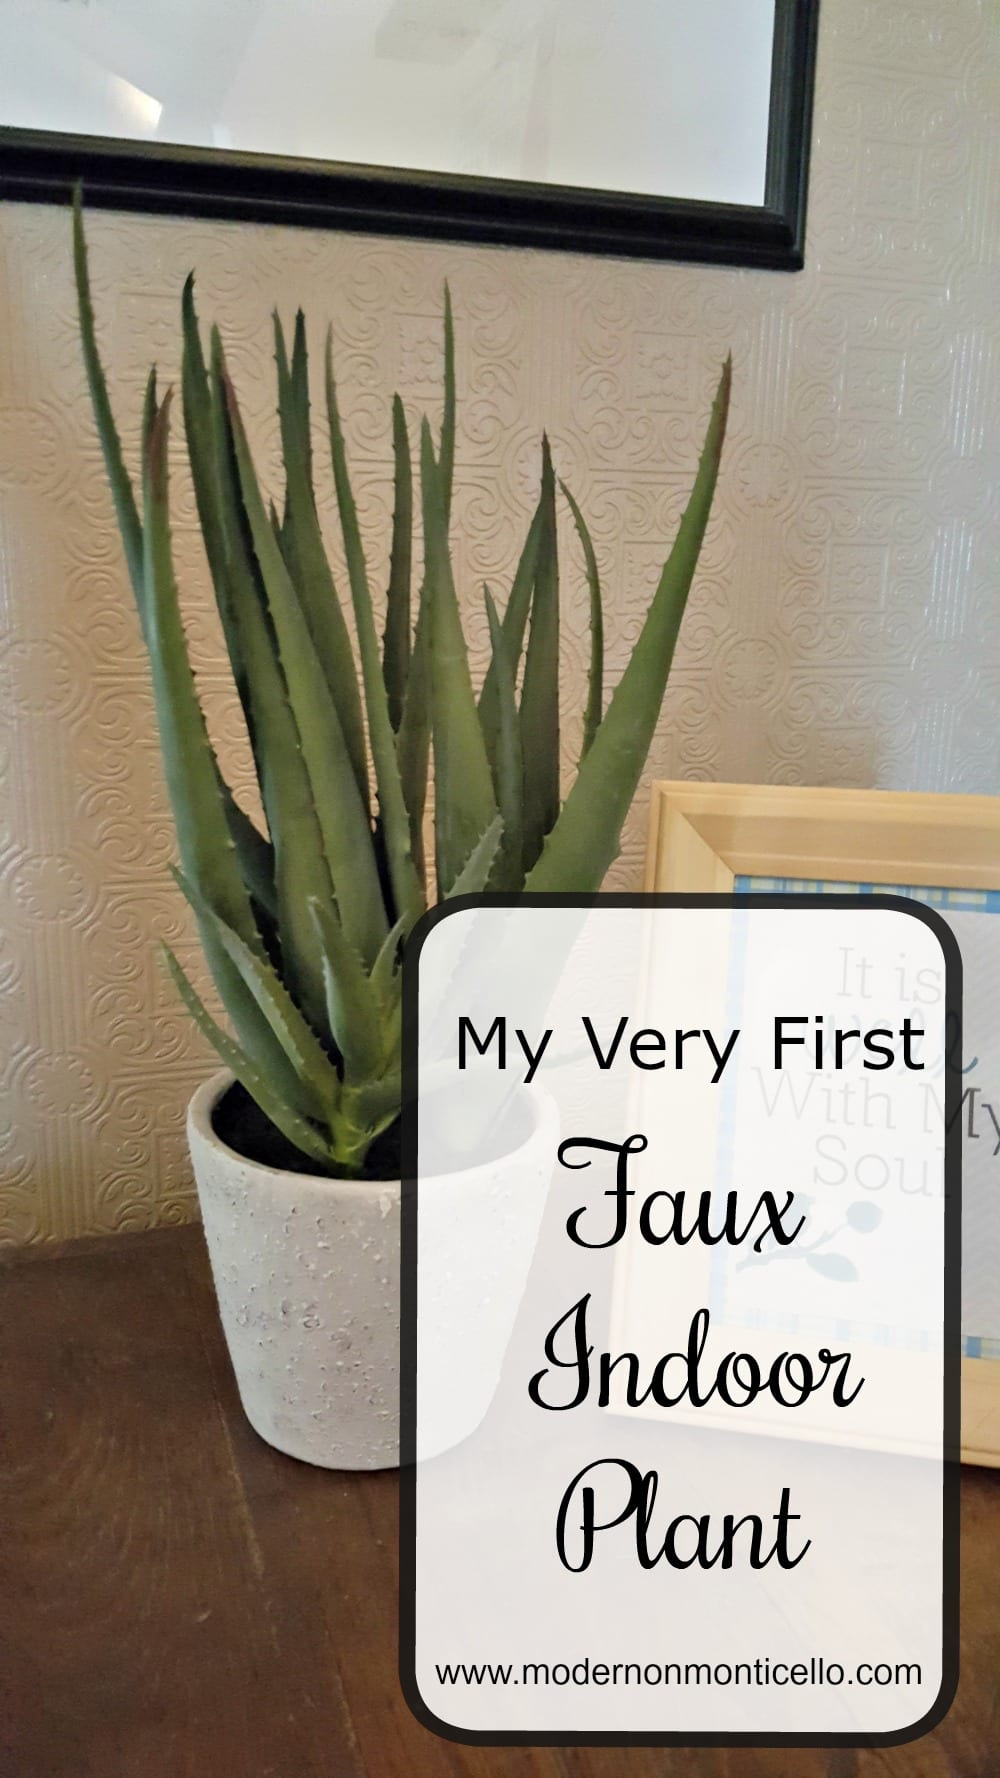 decorating with my first faux indoor plant - modern on monticello Faux Indoor Plants